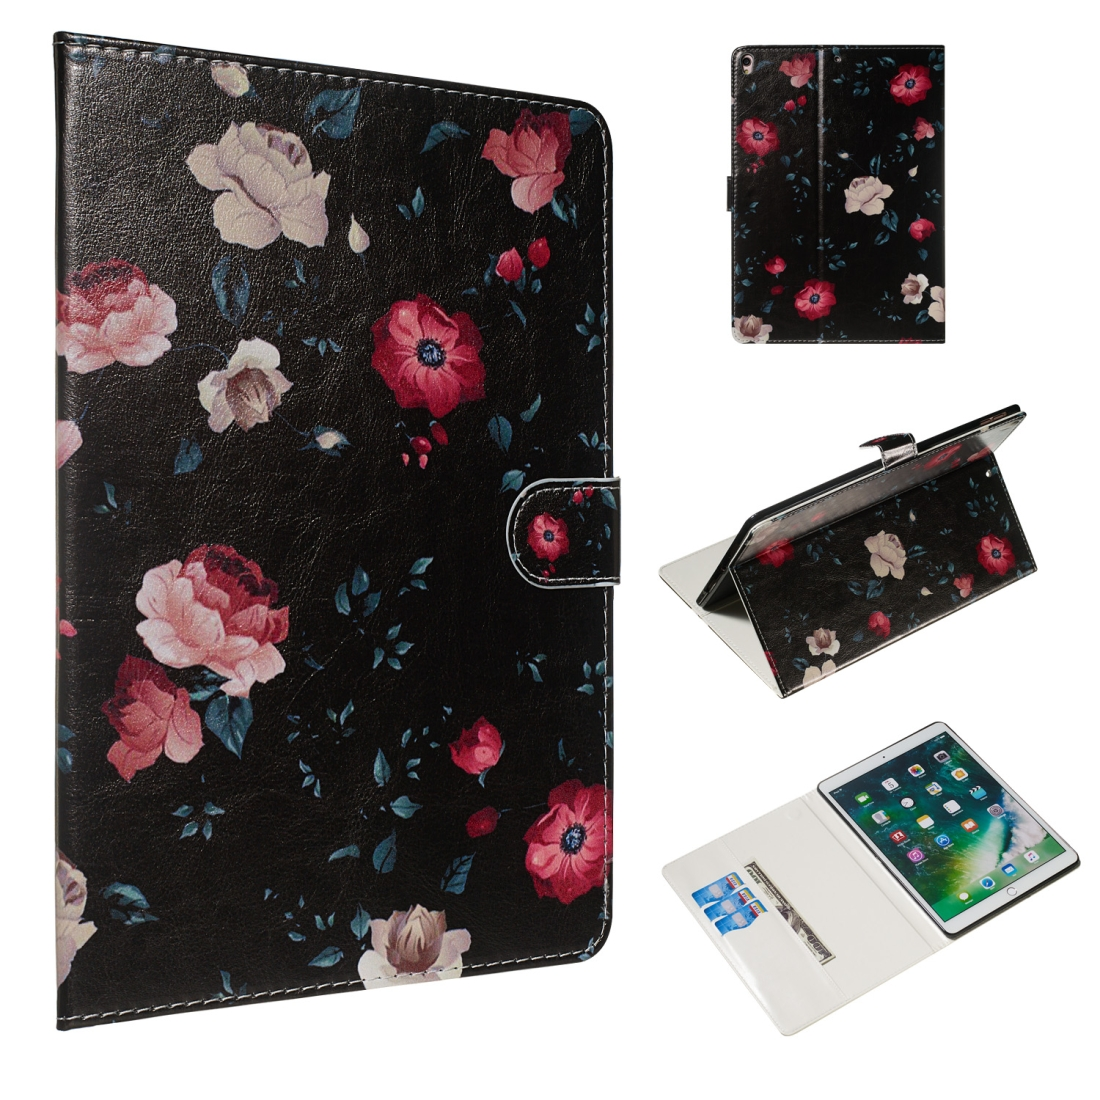 For iPad Air 10.5 (2019)/ iPad Pro 10.5 (2017) Leather Case & Sleeves (Black Backgroud Flower)